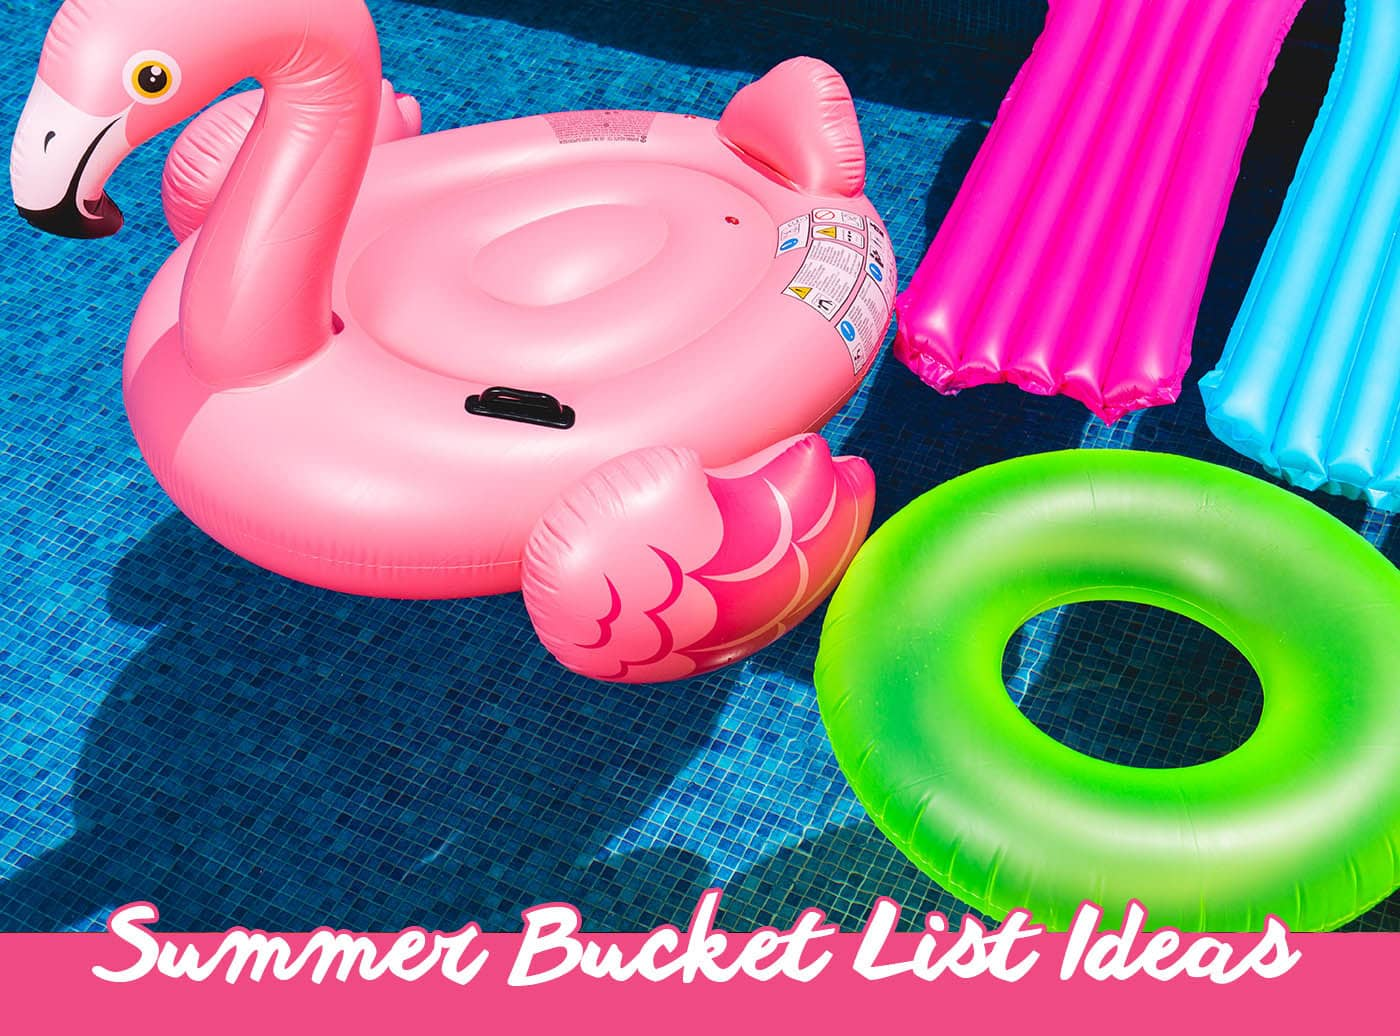 Summer Bucket List - 50 Things to do in Summer | Bucket List Inspiration & Ideas